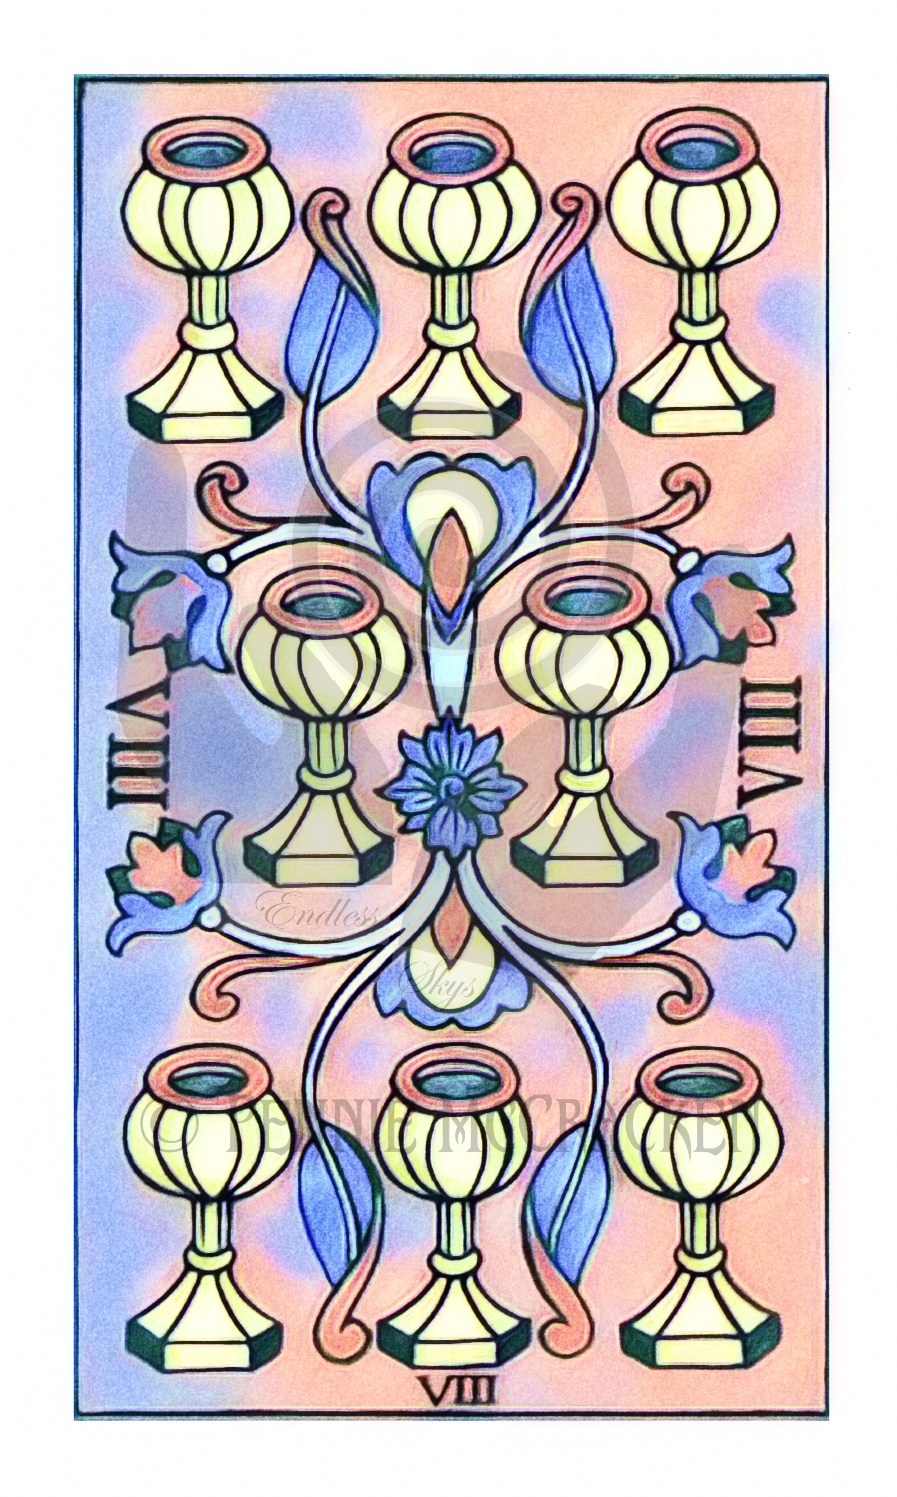 Tarot de Marseille in Sidewalk Chalk Design by Pennie McCracken - Endless Skys